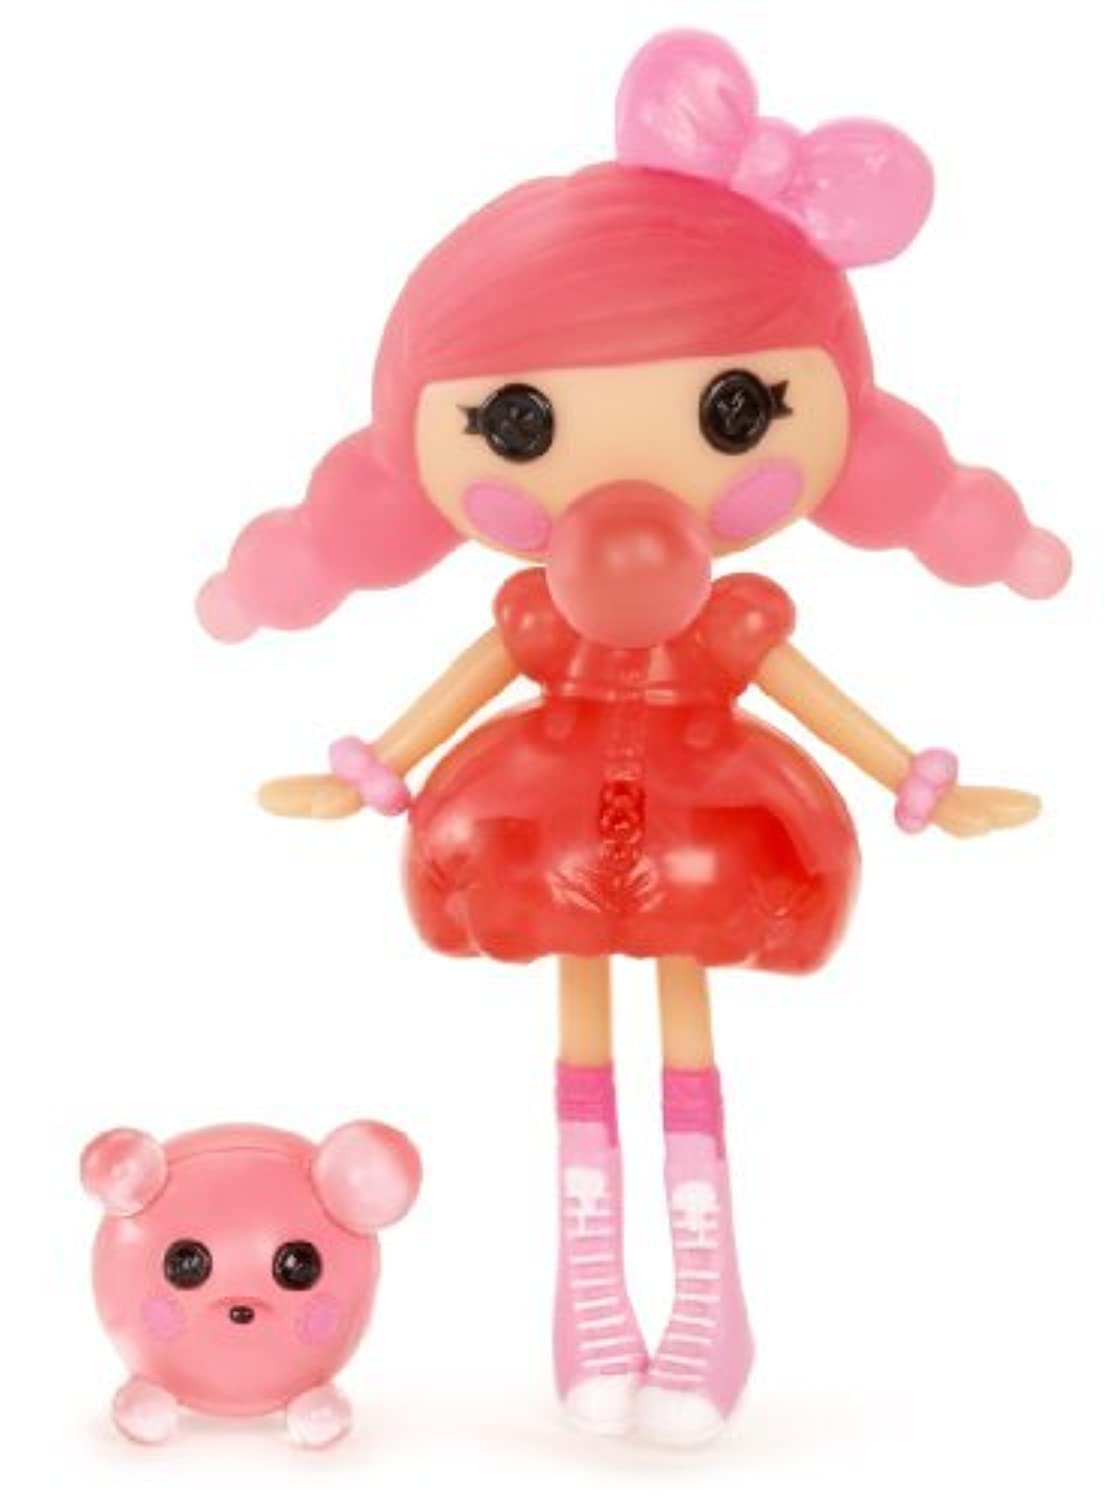 Mini Lalaloopsy Doll - Bubble Smack 'N' Pop by Lalaloopsy [並行輸入品]